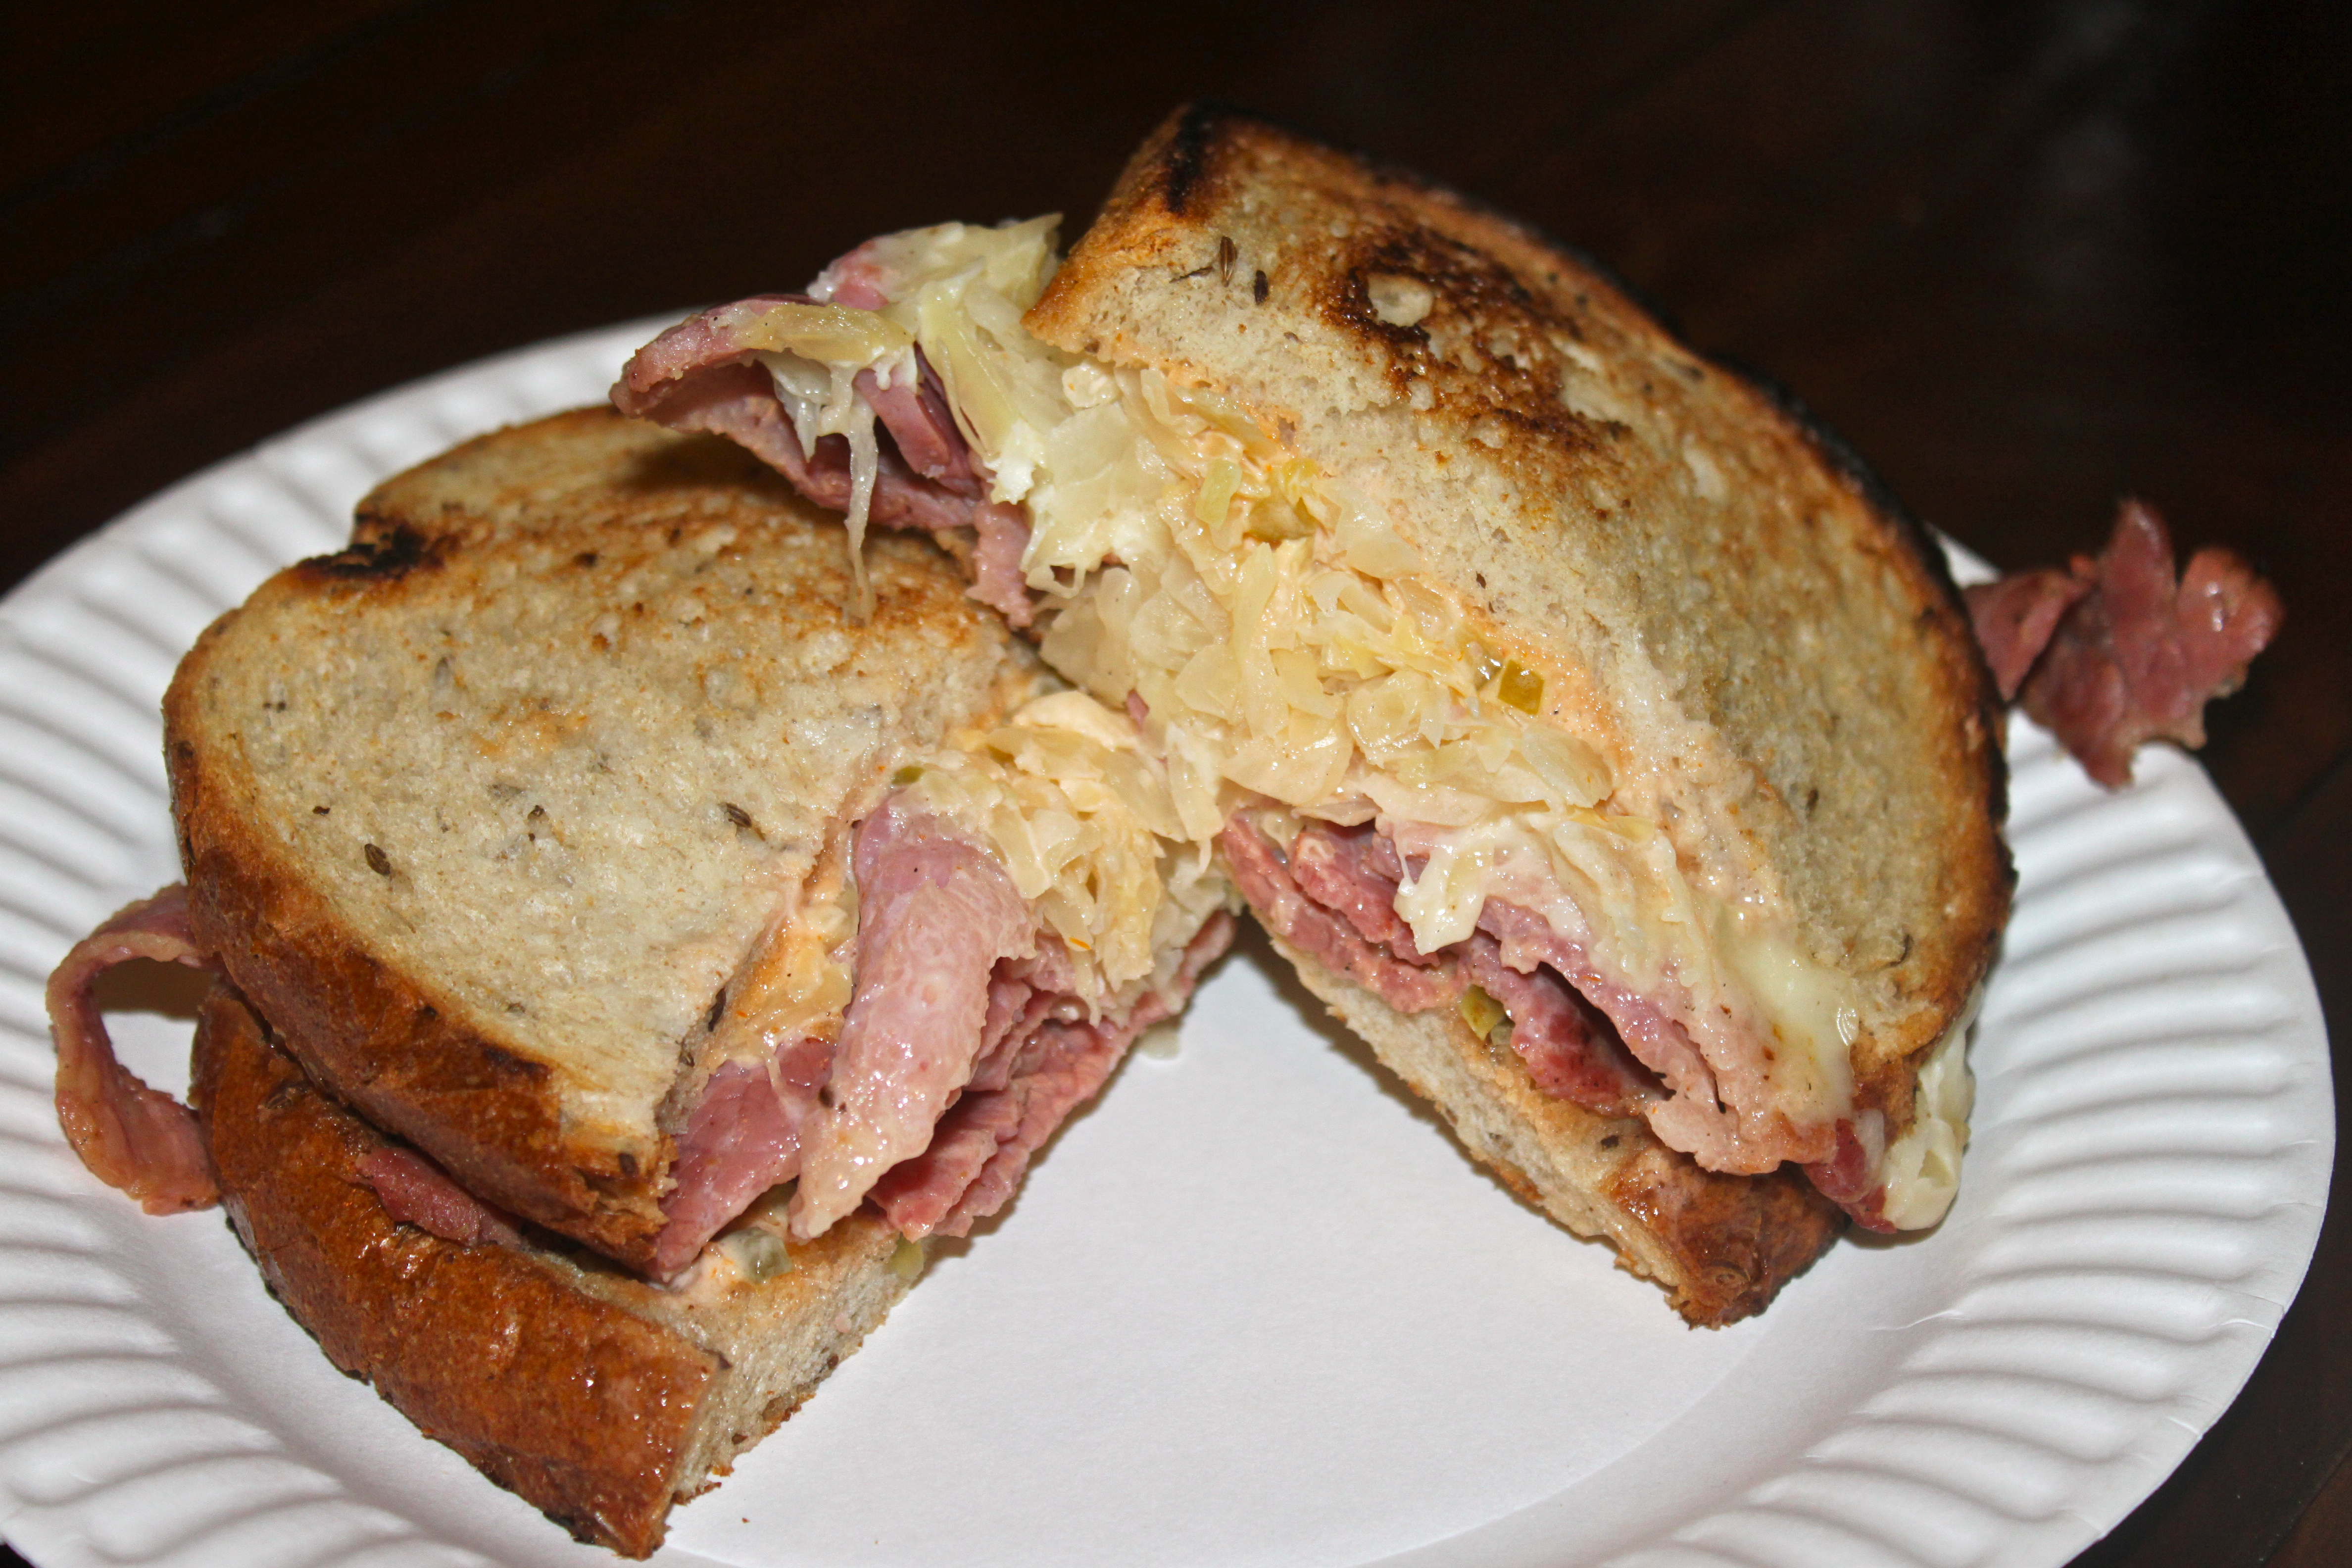 ... hot corned beef, griddled sauerkraut, swiss and russian on rye bread